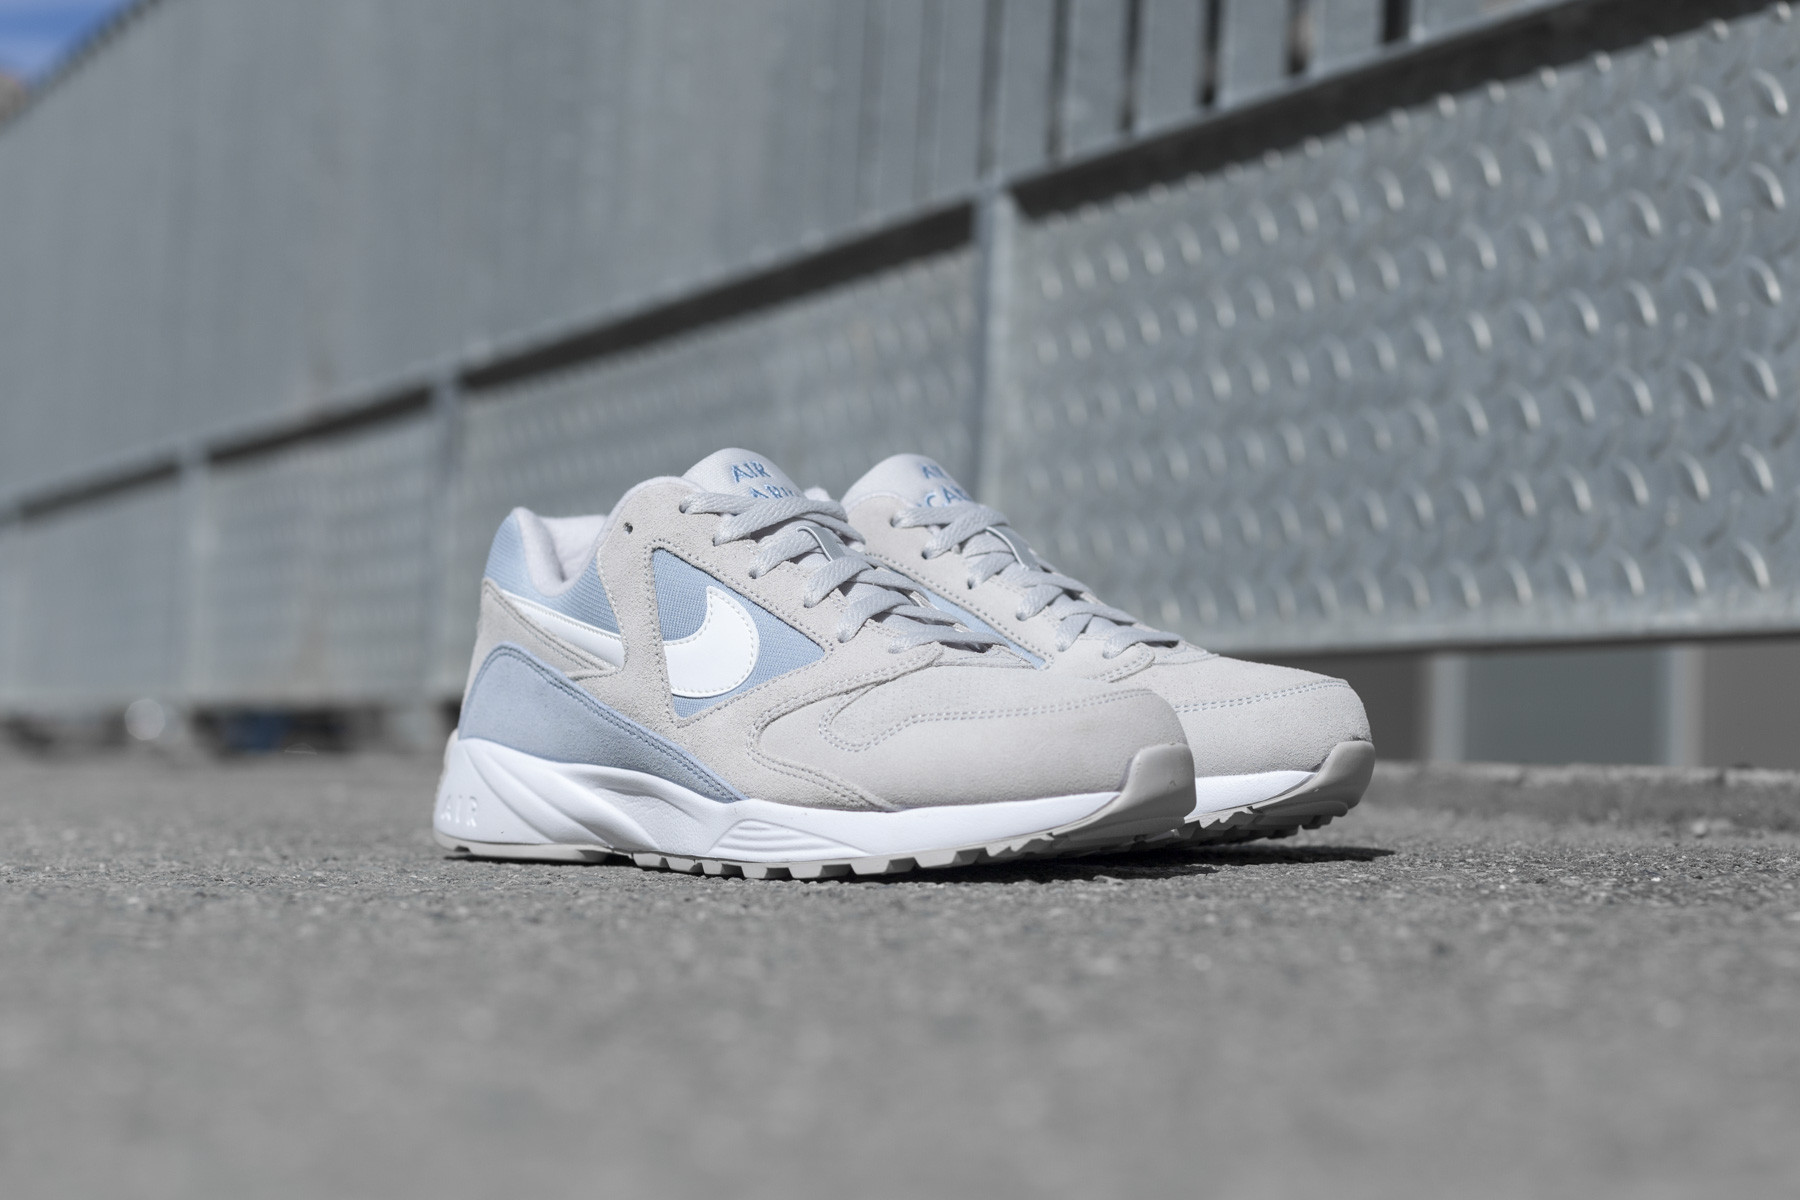 online store f67db cd239 Nike Air Icarus Extra Prm - Sneakers - Sneaker.no